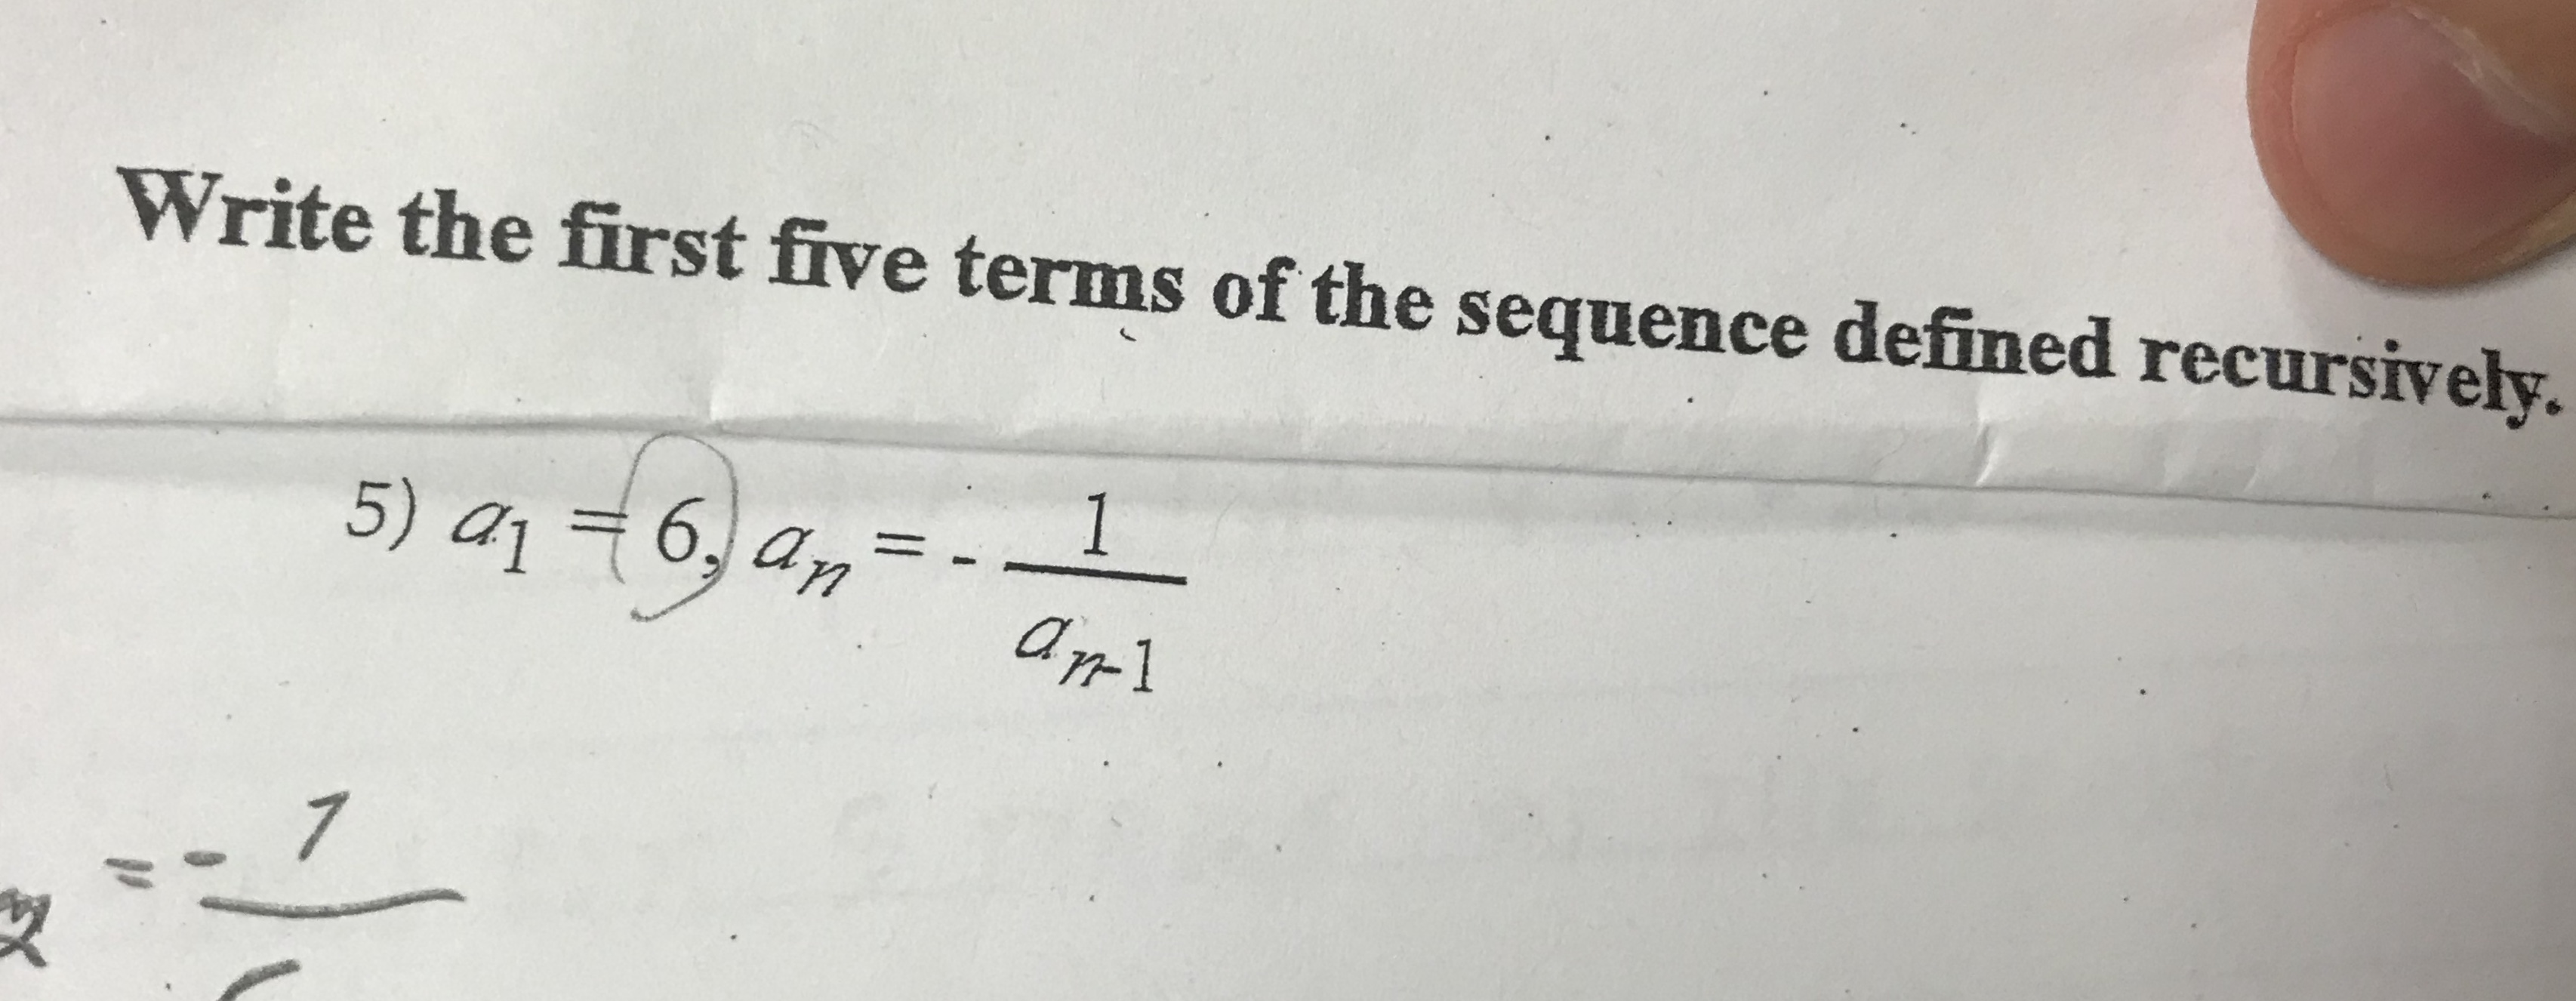 Write the first five terms of the sequence defined recursively. 1 5) 416, am ar1 7